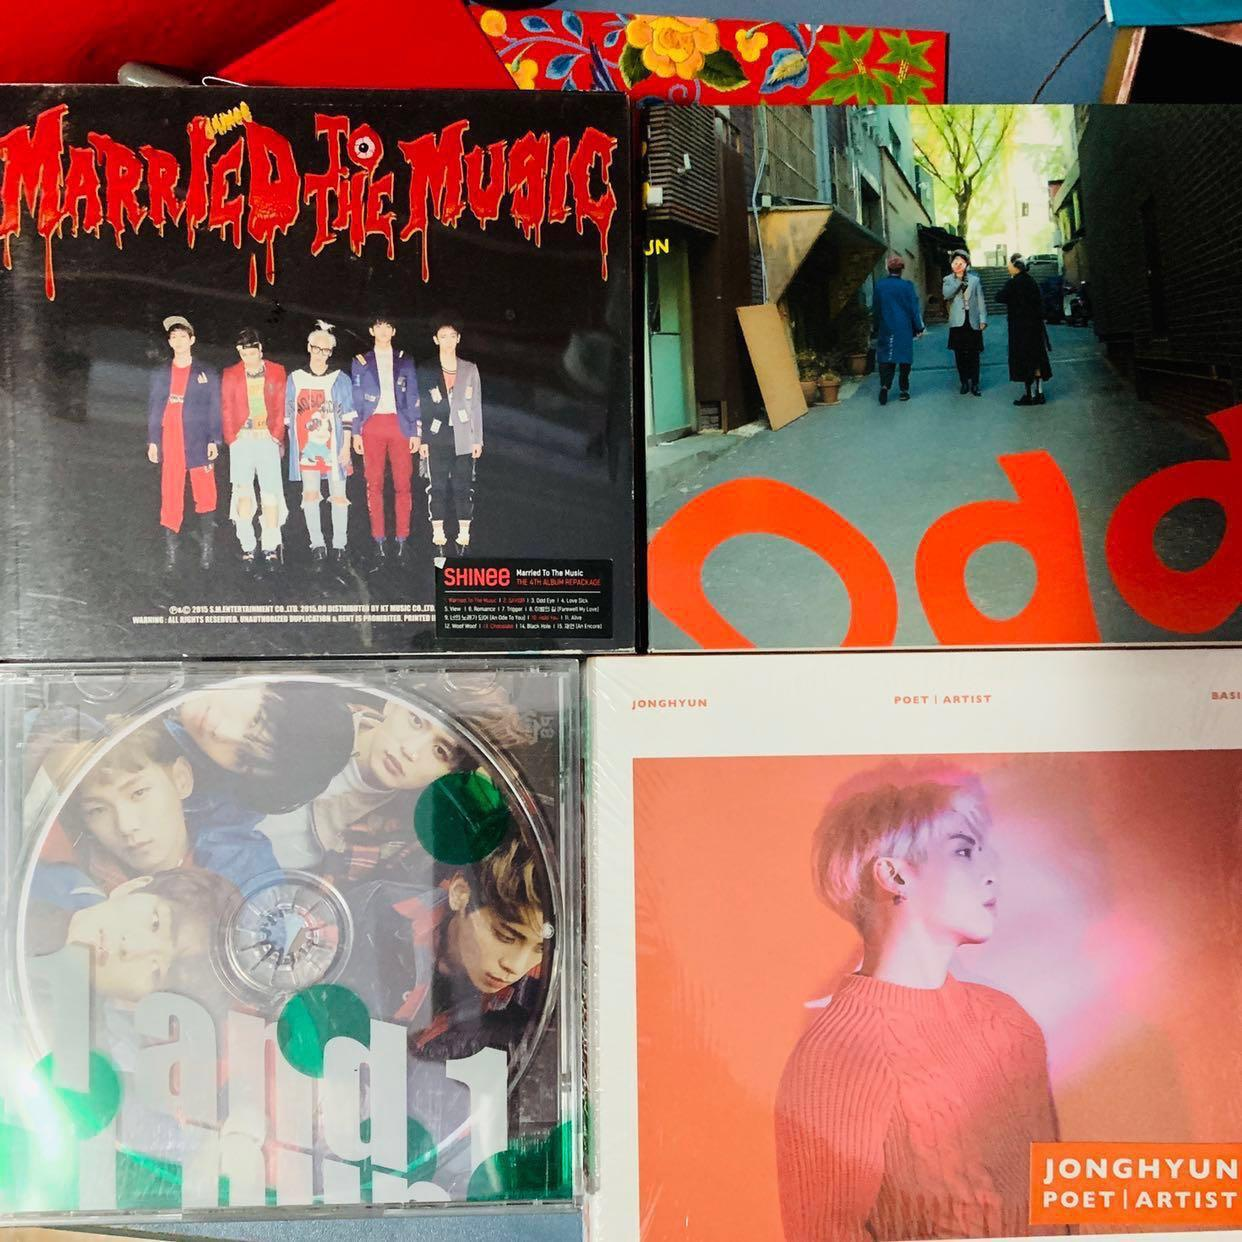 SHINee / Jonghyun albums - Odd Ver B, Married To The Music